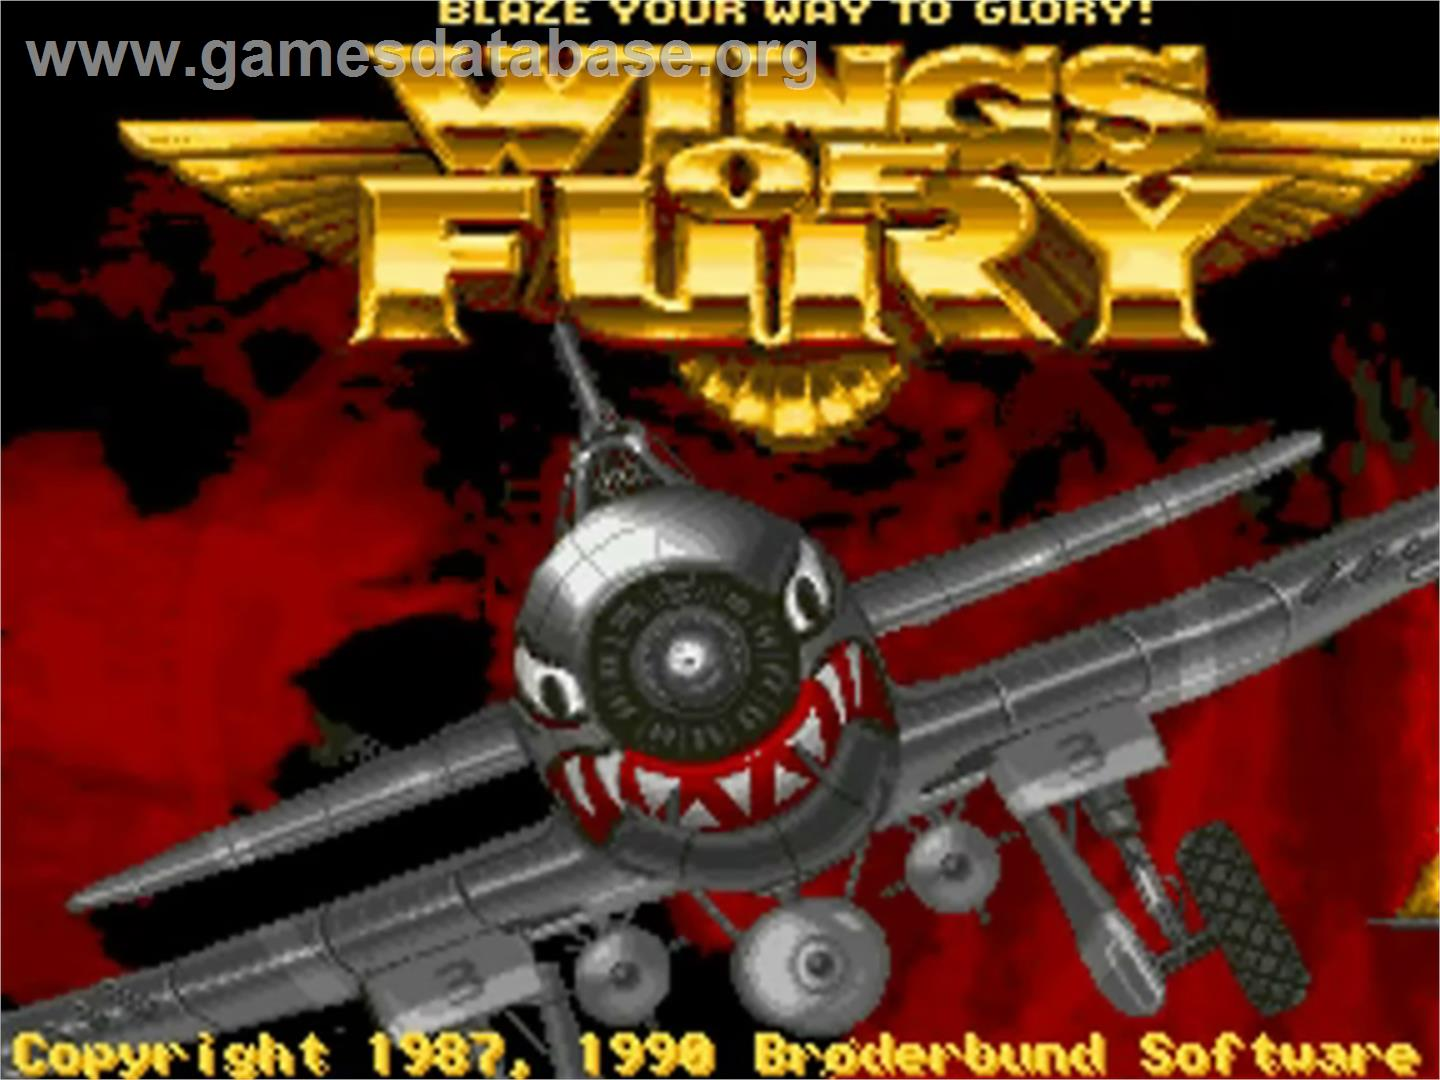 Wings of fury commodore amiga games database for Wings of fury